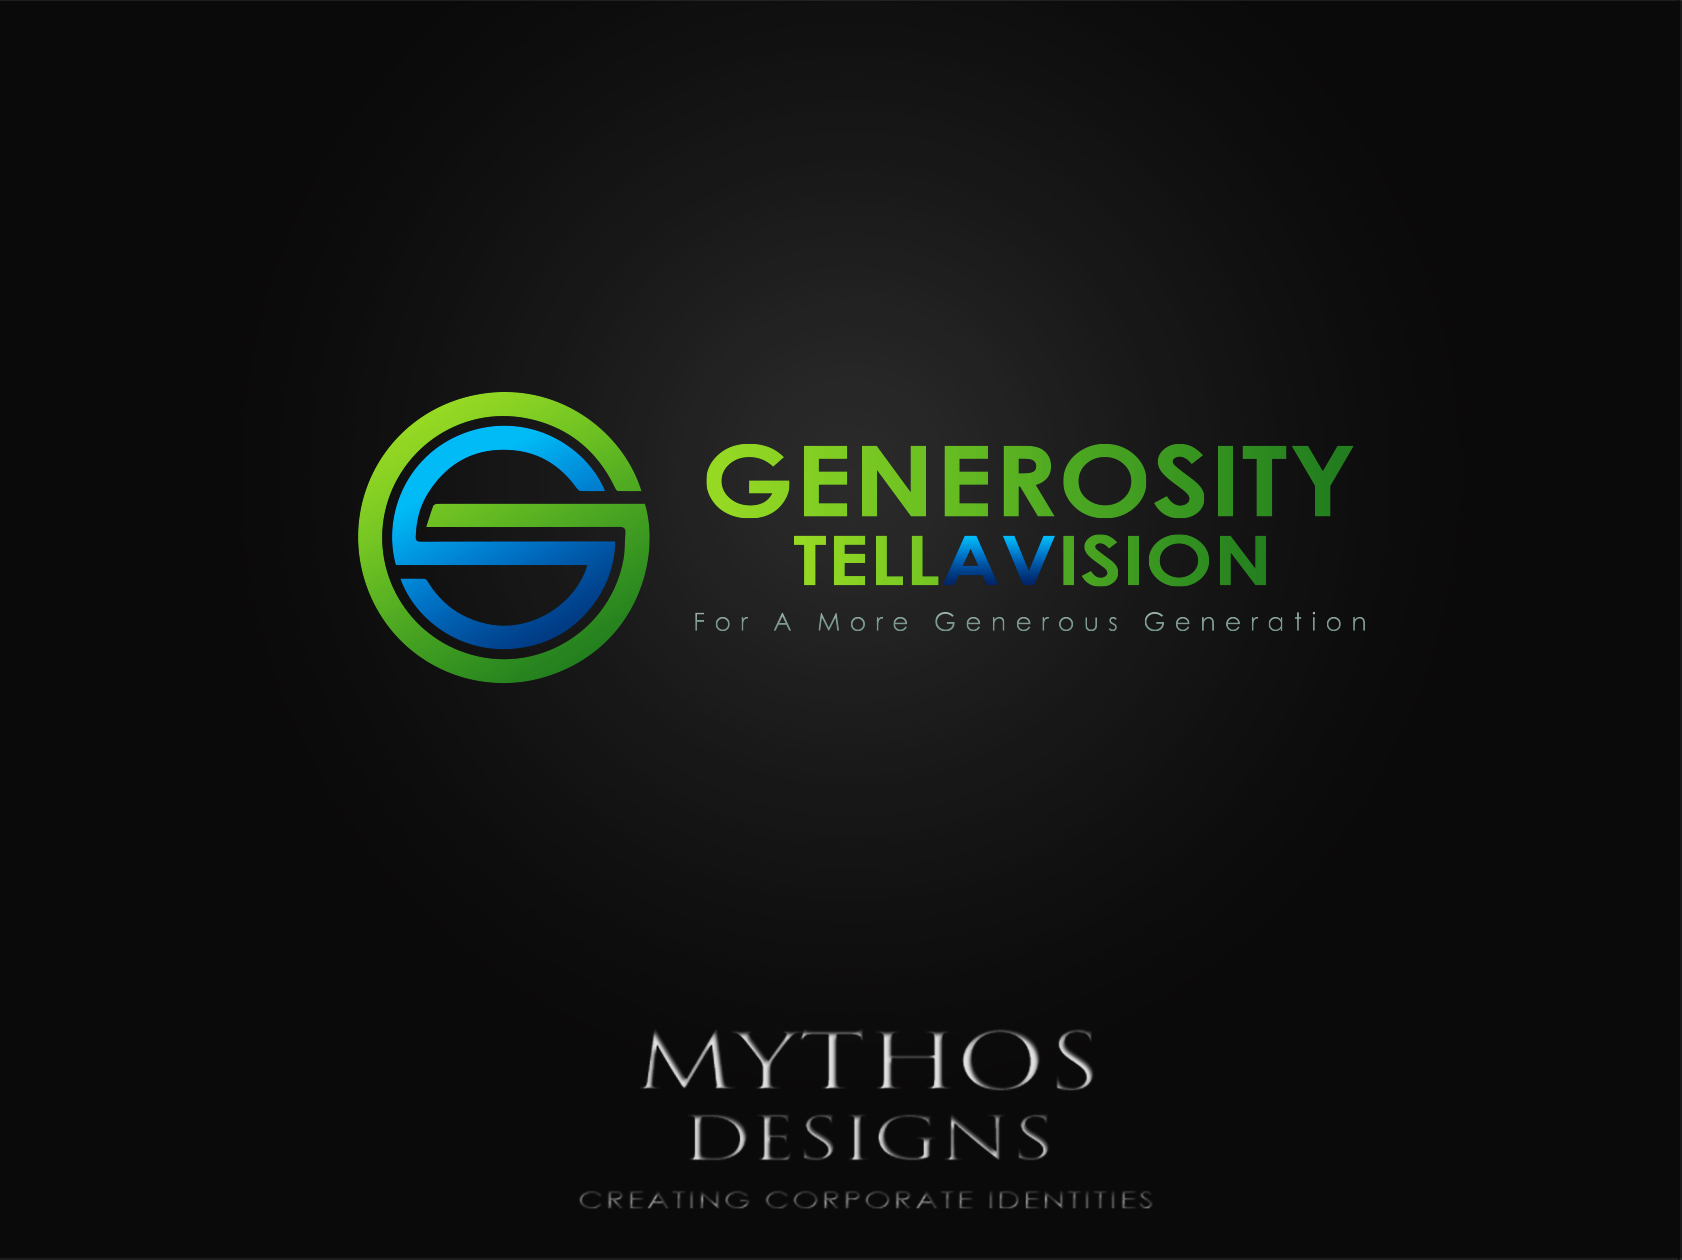 Logo Design by Mythos Designs - Entry No. 82 in the Logo Design Contest Artistic Logo Design for Generosity TellAVision.